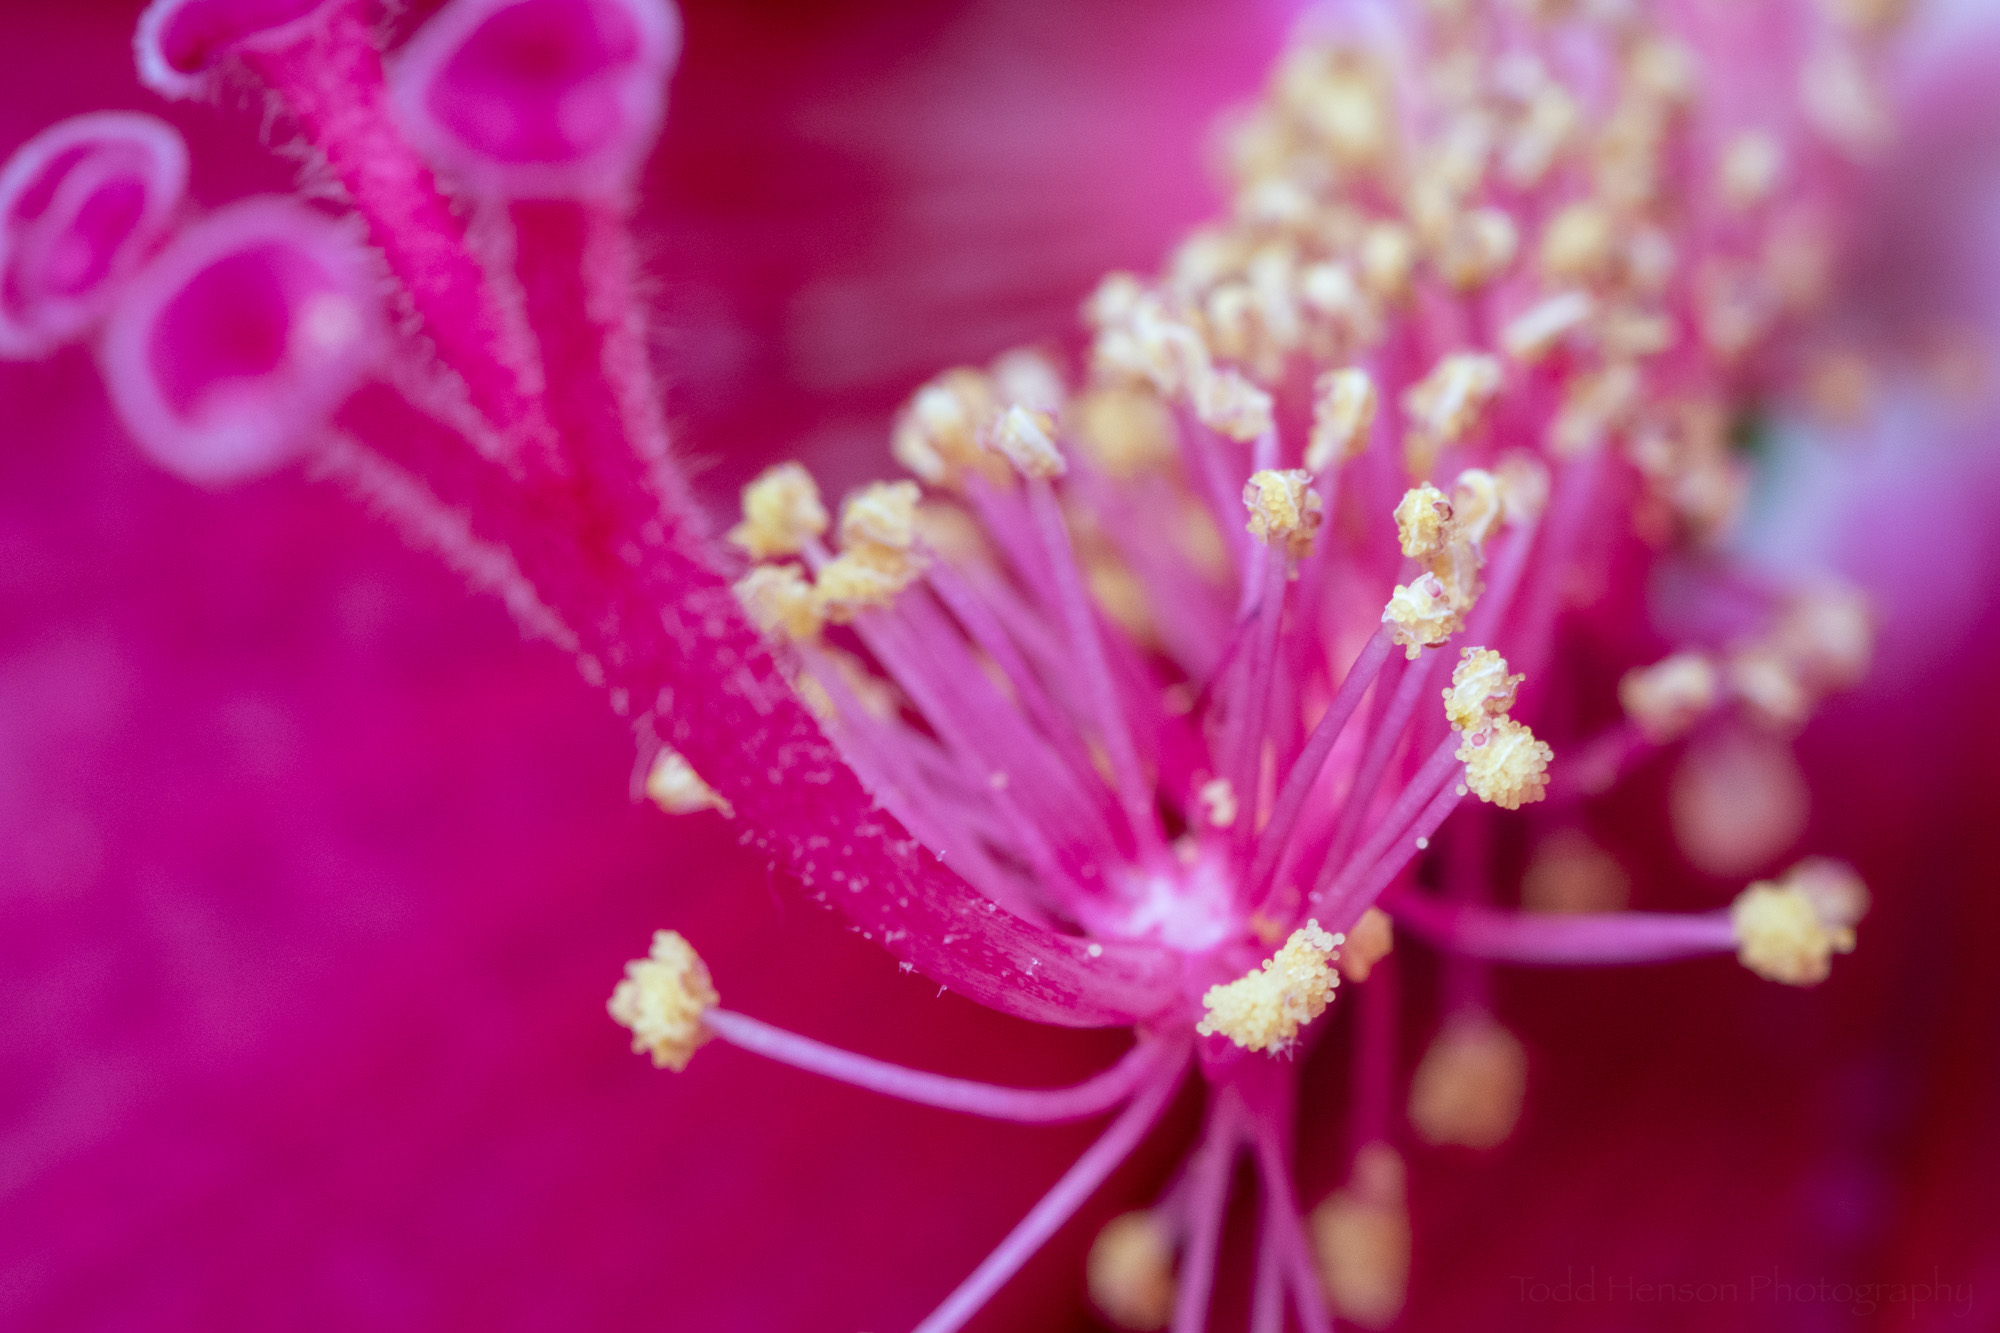 Notice the yellow grains of pollen of the hibiscus flower.